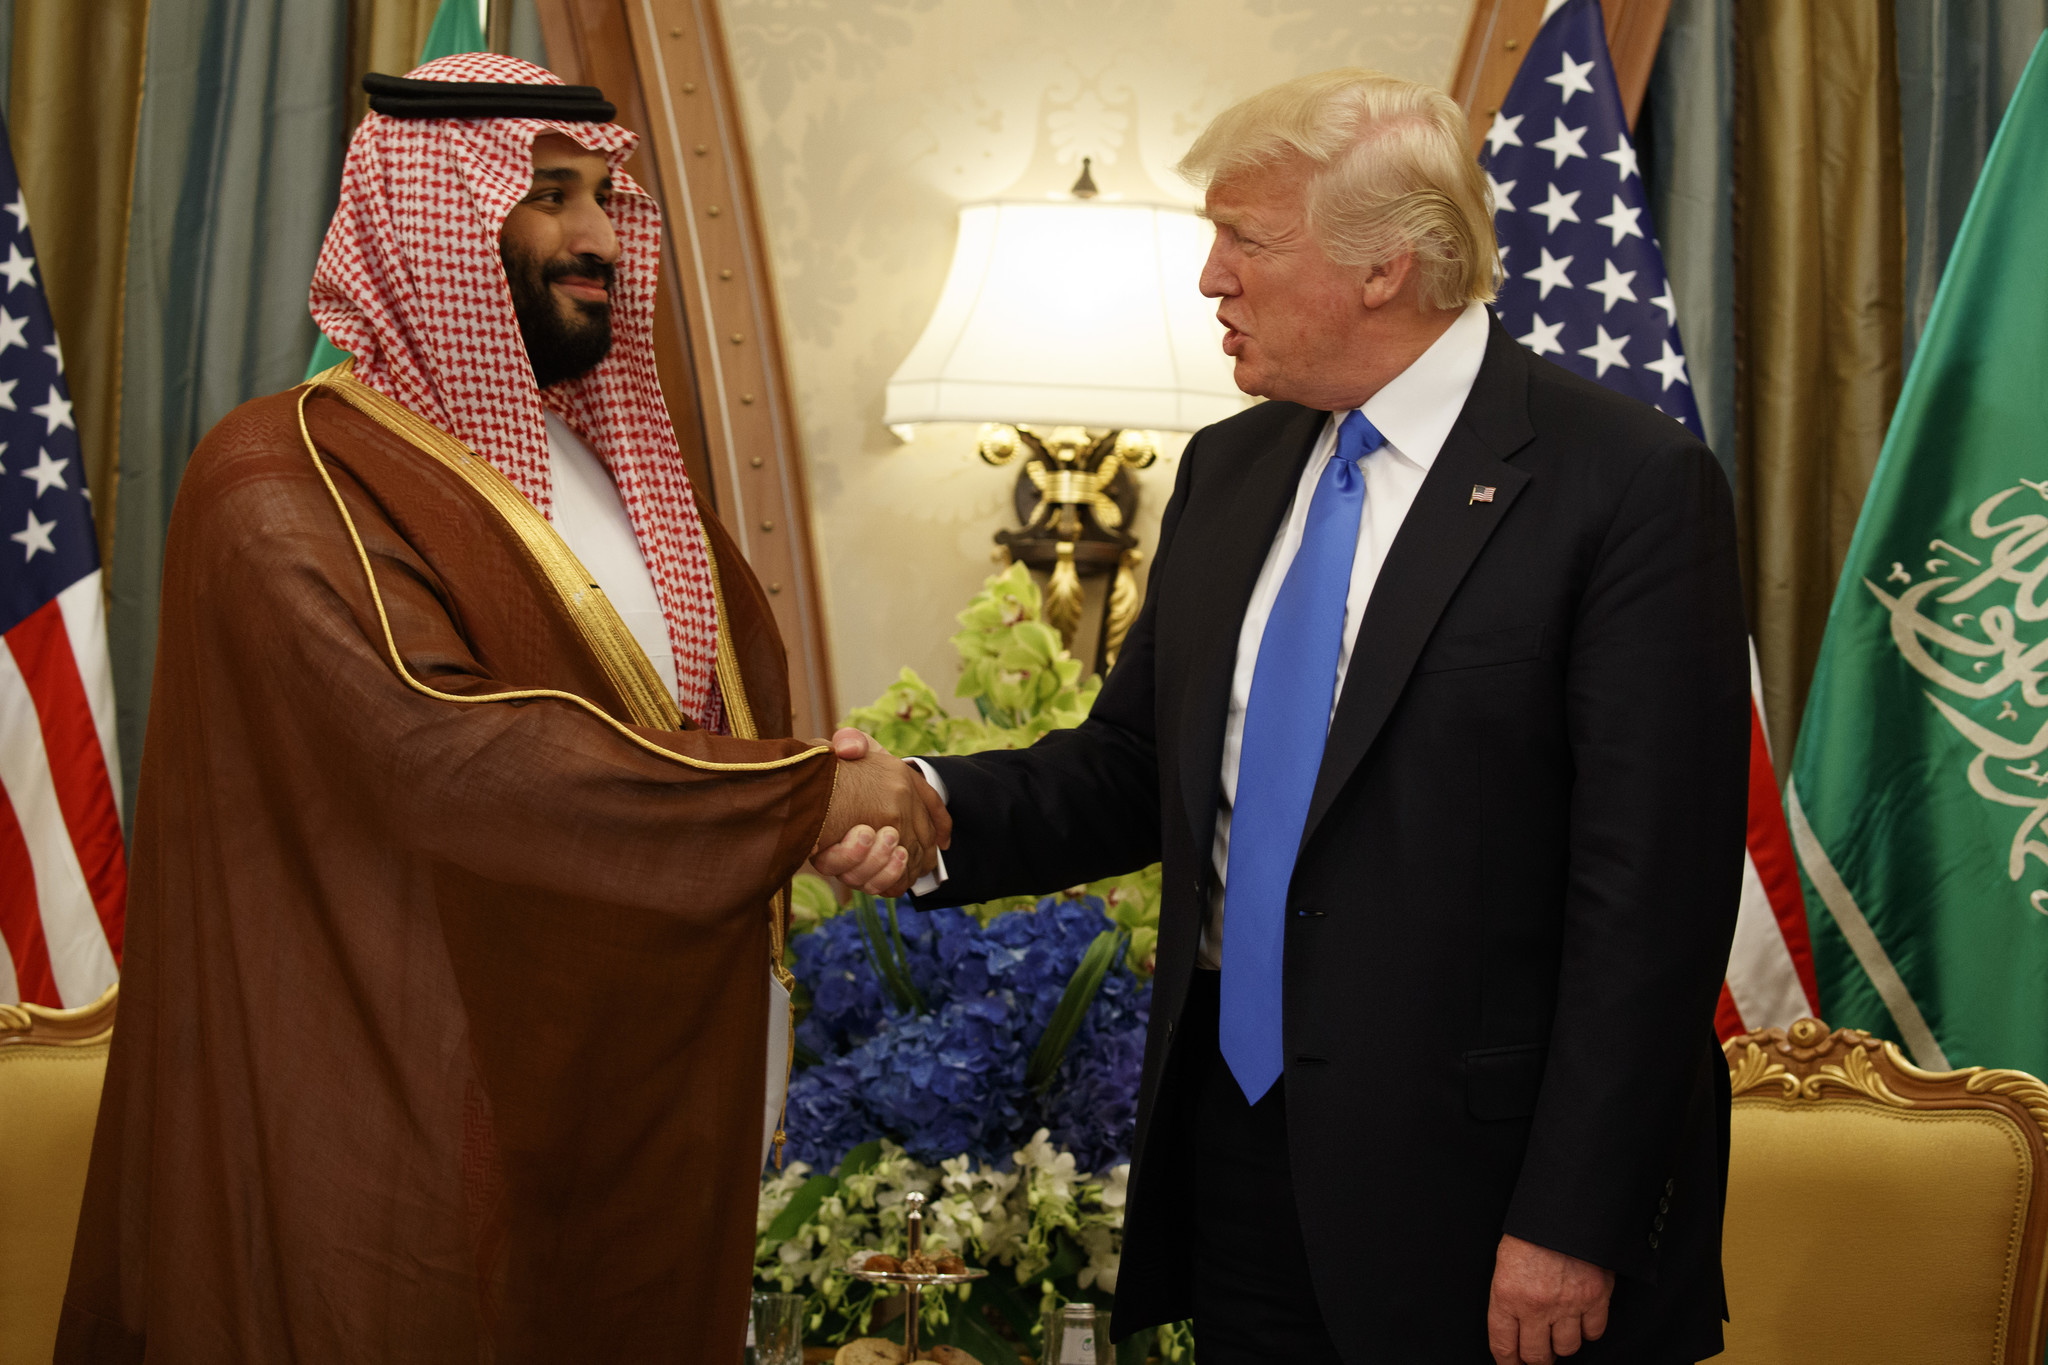 Emails reveal secret lobbying effort to alter U.S. policy in Middle East